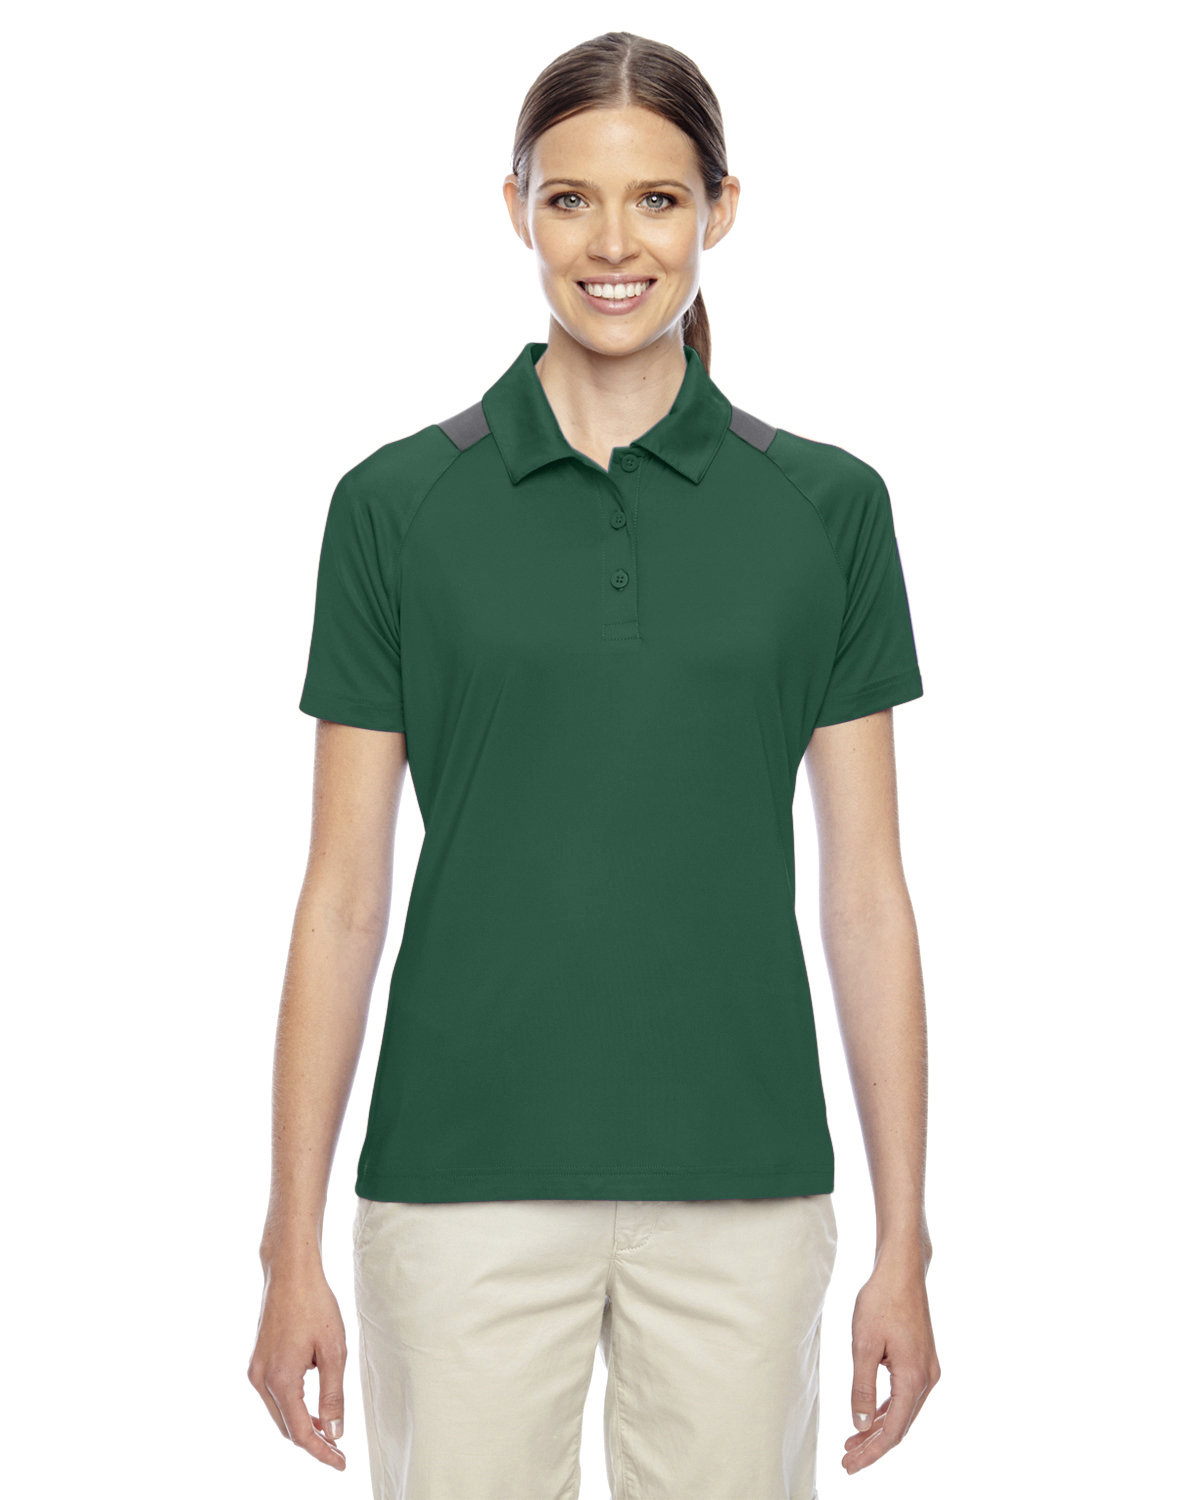 Team 365 Ladies' Innovator Performance Polo SP FOREST/ SP GR